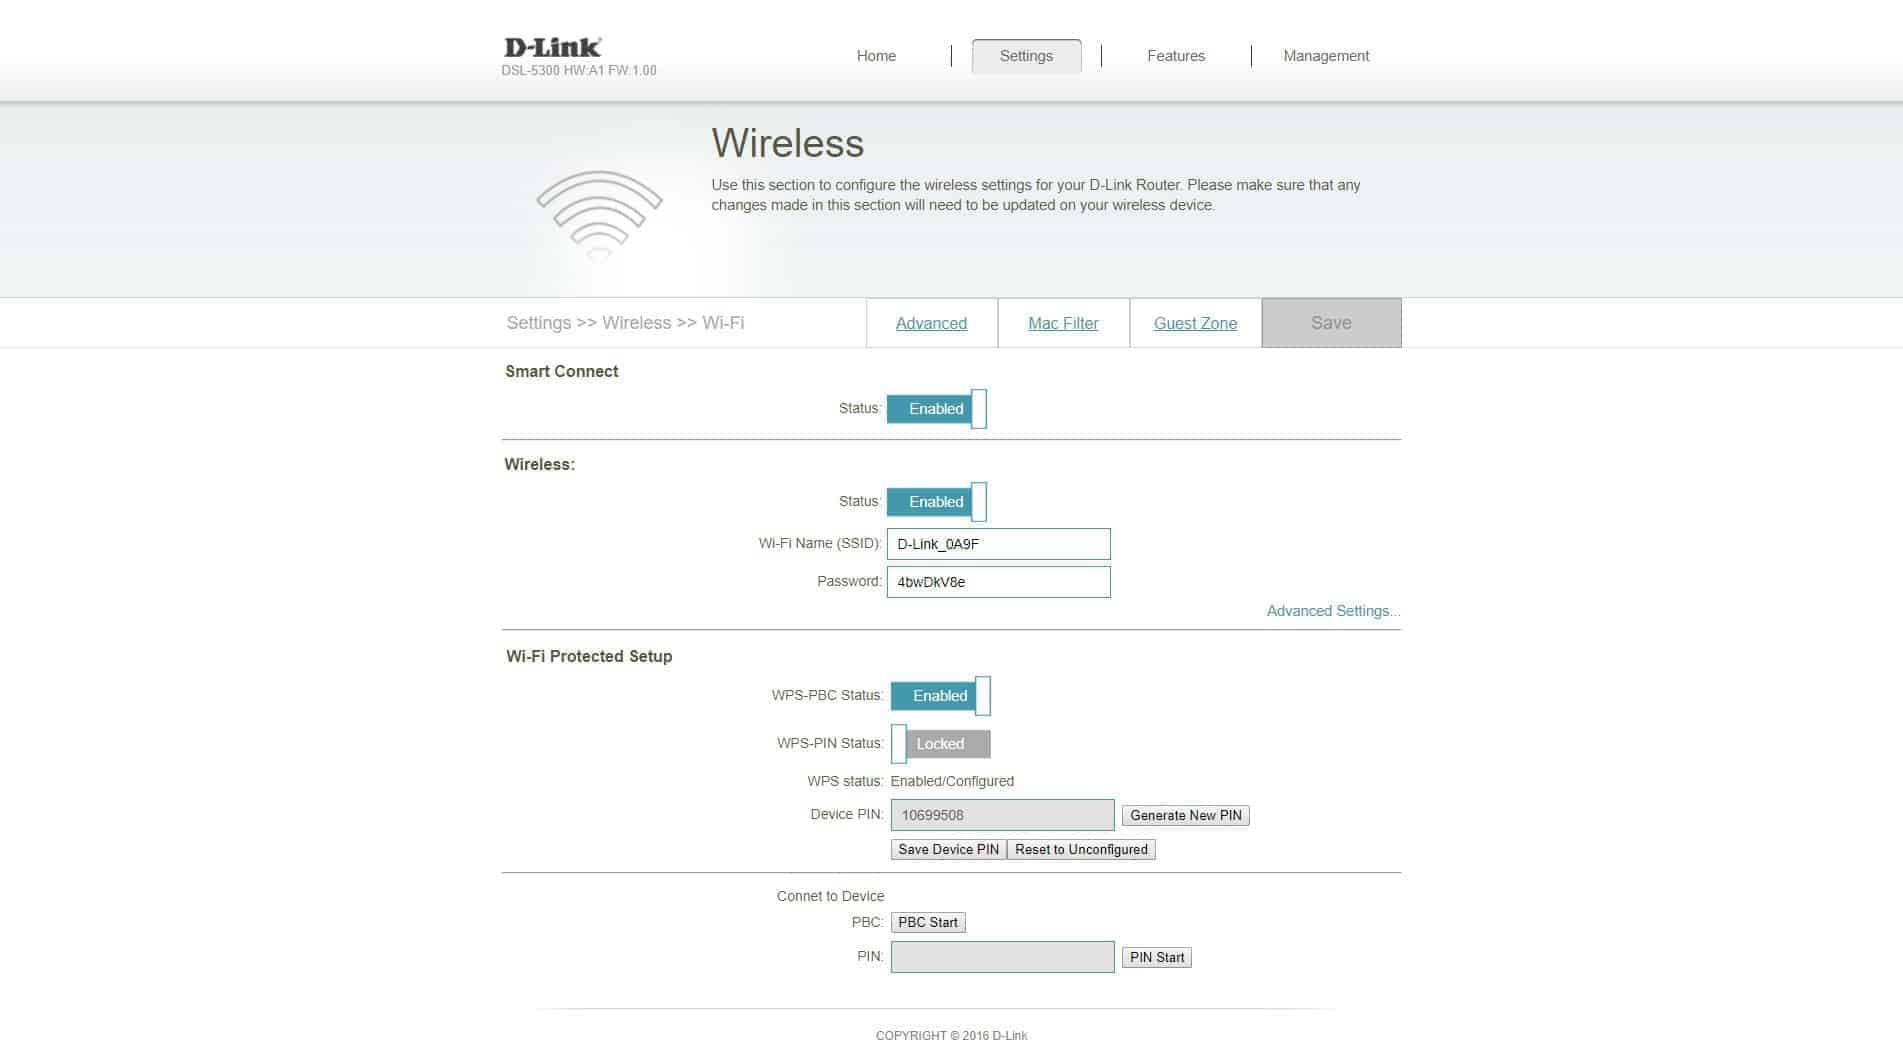 D-Link Cobra AC5300 Router Review - The Streaming Blog